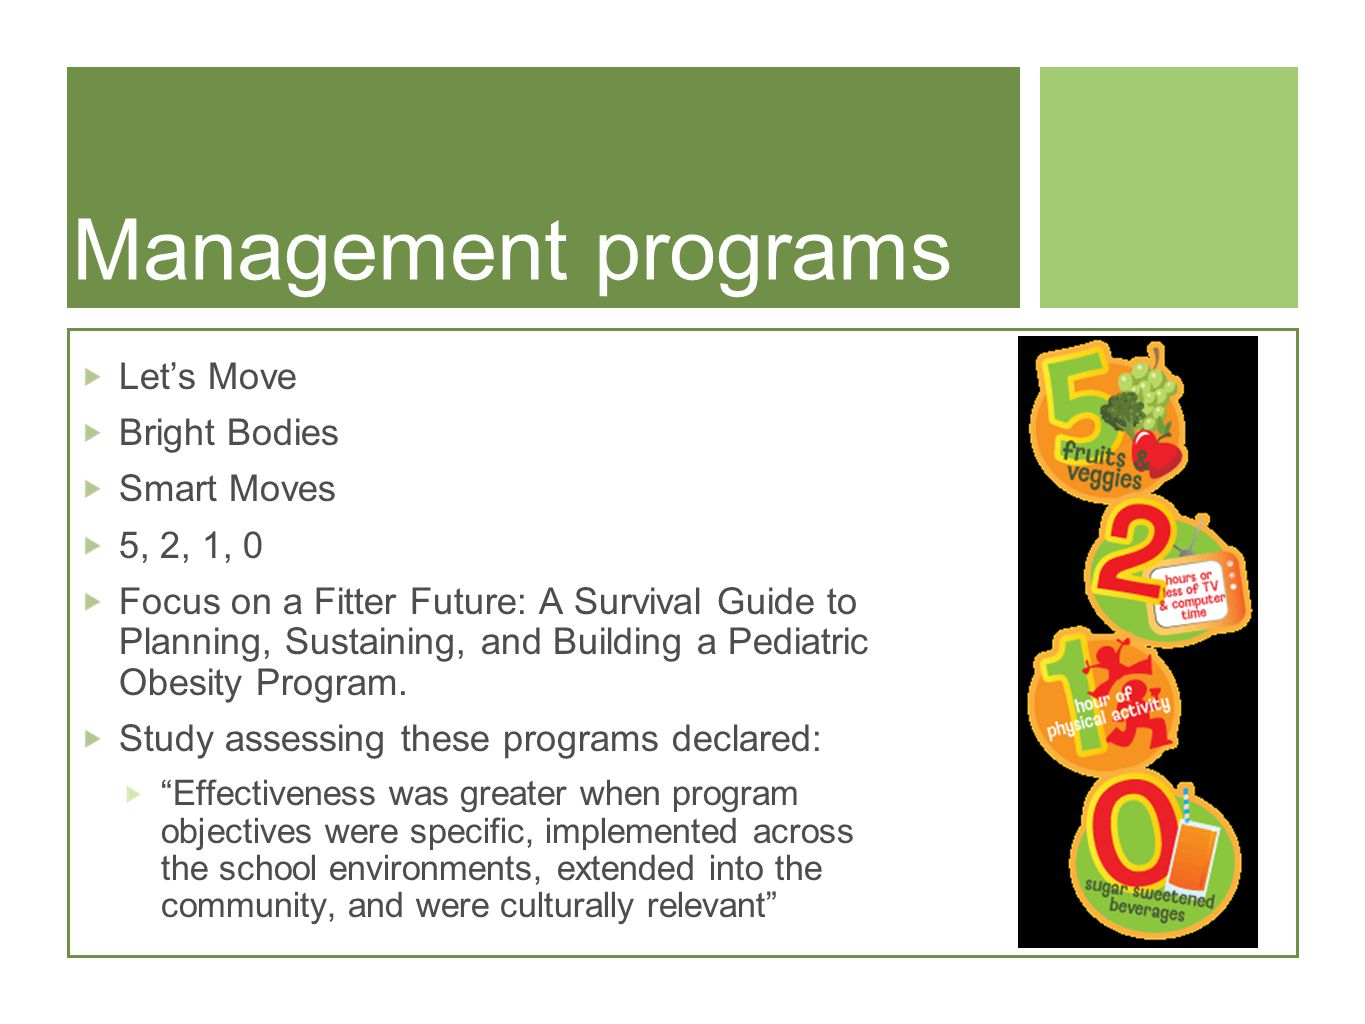 Management programs Lets Move Bright Bodies Smart Moves 5, 2, 1, 0 Focus on a Fitter Future: A Survival Guide to Planning, Sustaining, and Building a Pediatric Obesity Program.